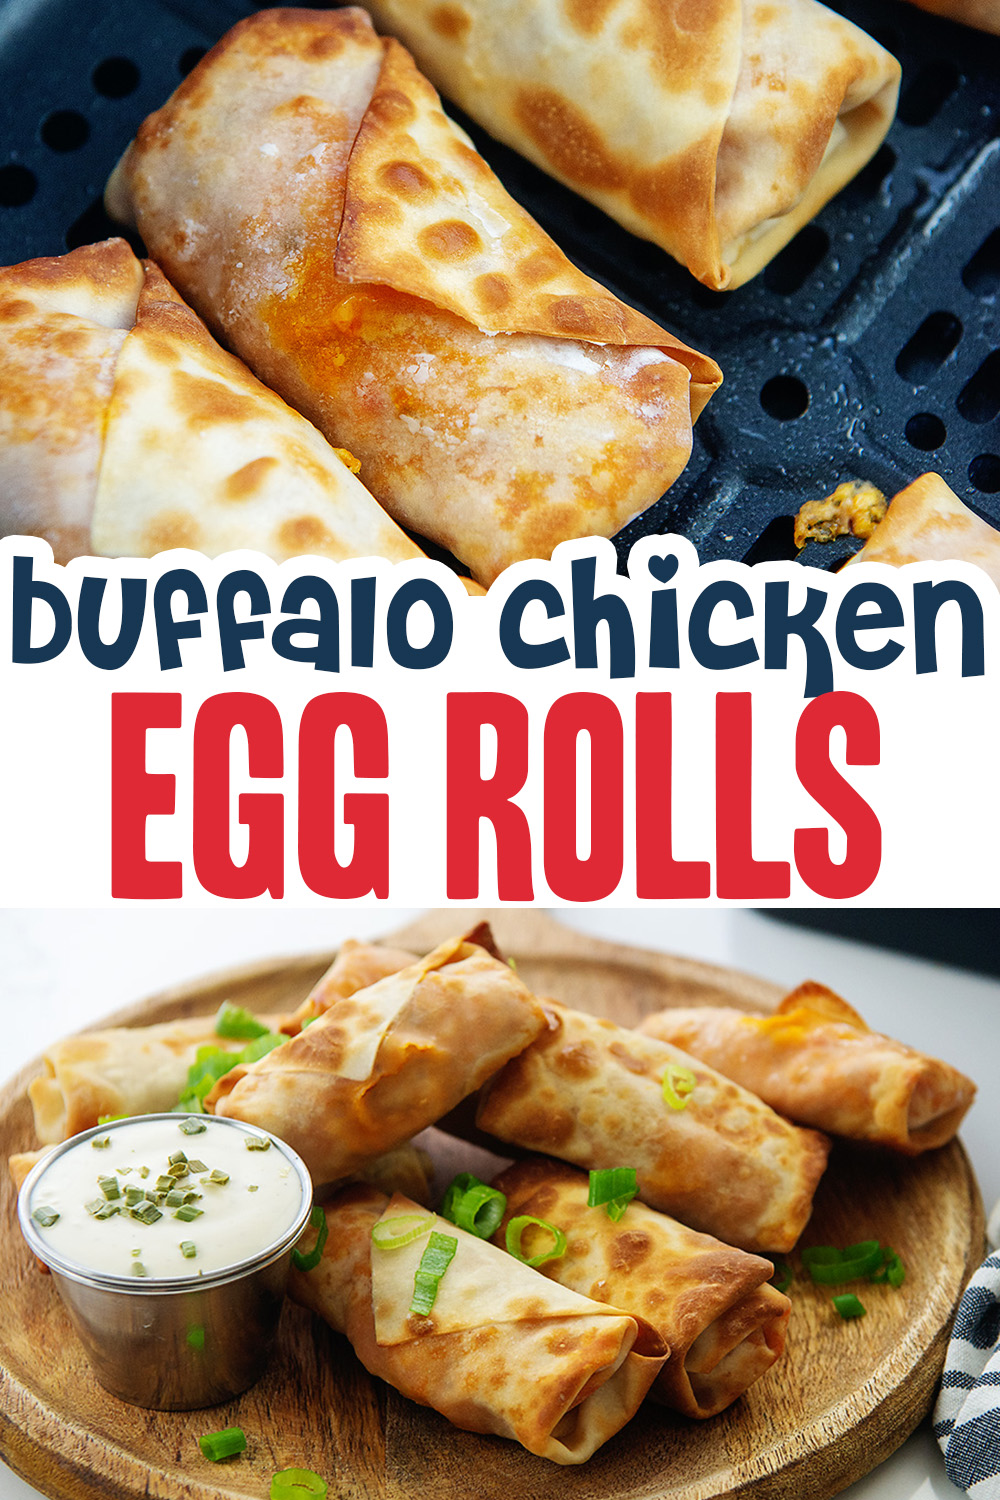 Our buffalo chicken egg roll recipe uses the air fryer to keep things easy and clean.  The filling is only mildly spicy, but you can make it hotter if you want.  Tips in the recipe!